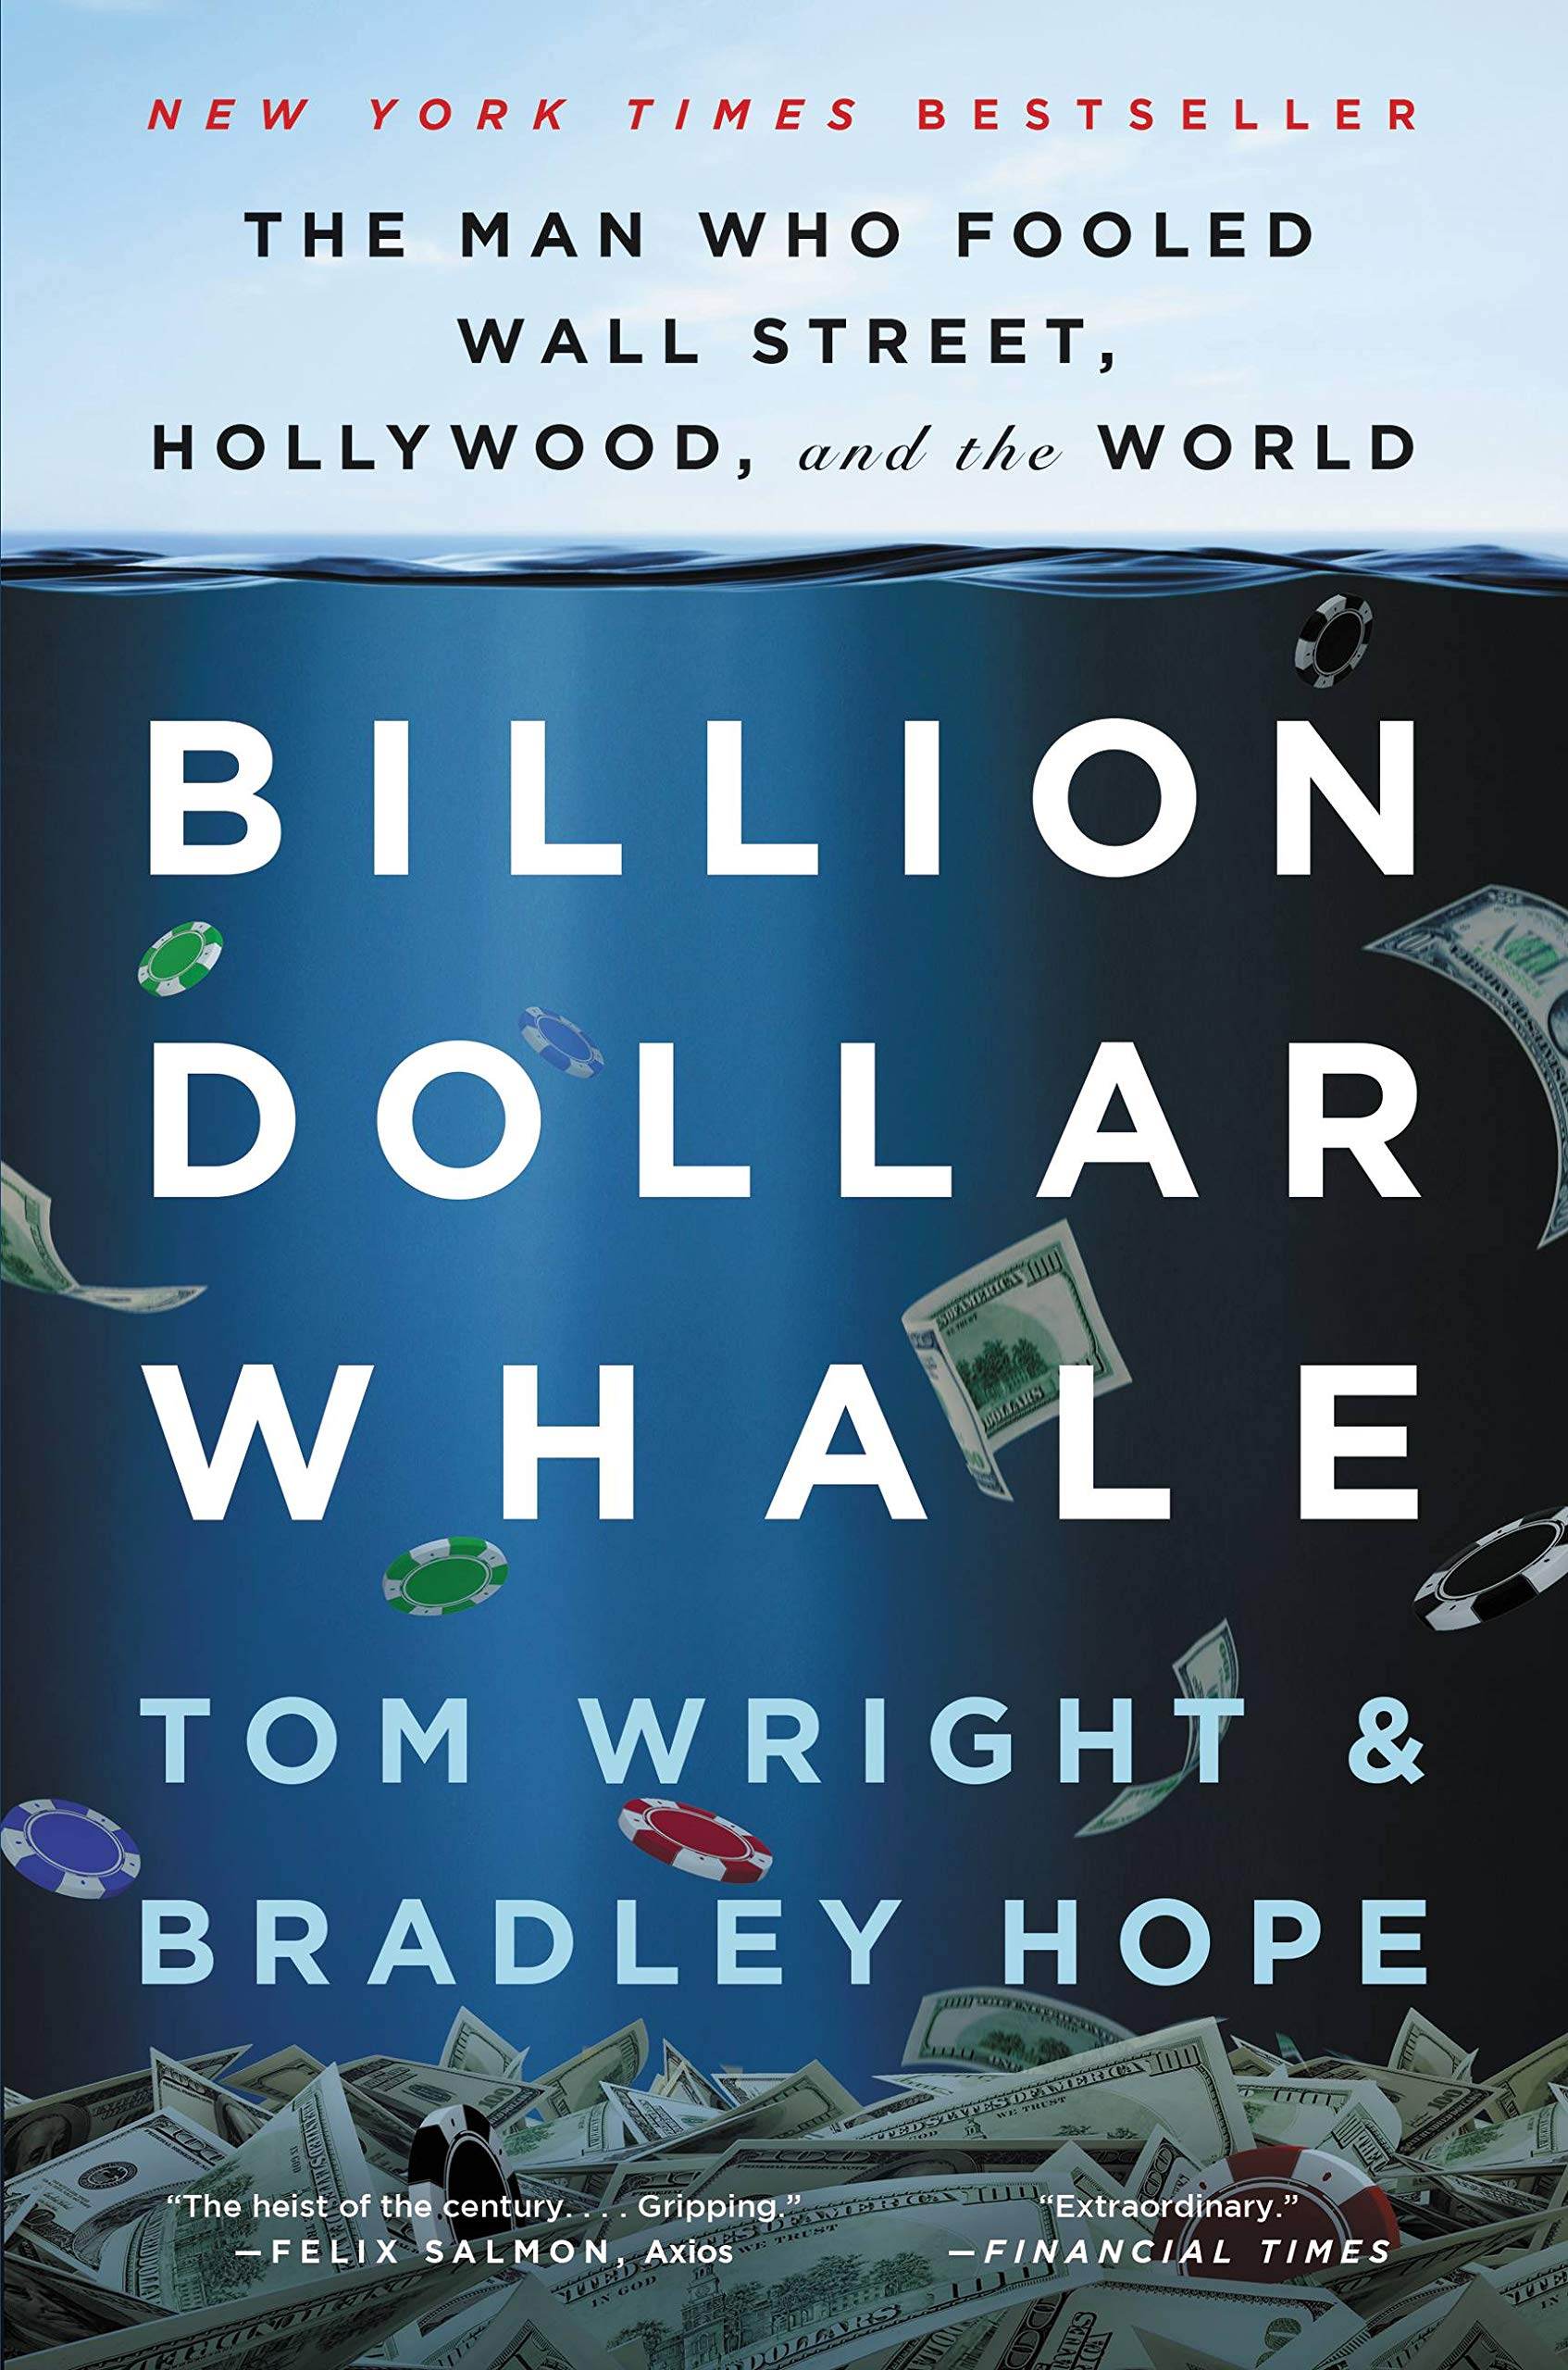 Image OfBillion Dollar Whale: The Man Who Fooled Wall Street, Hollywood, And The World